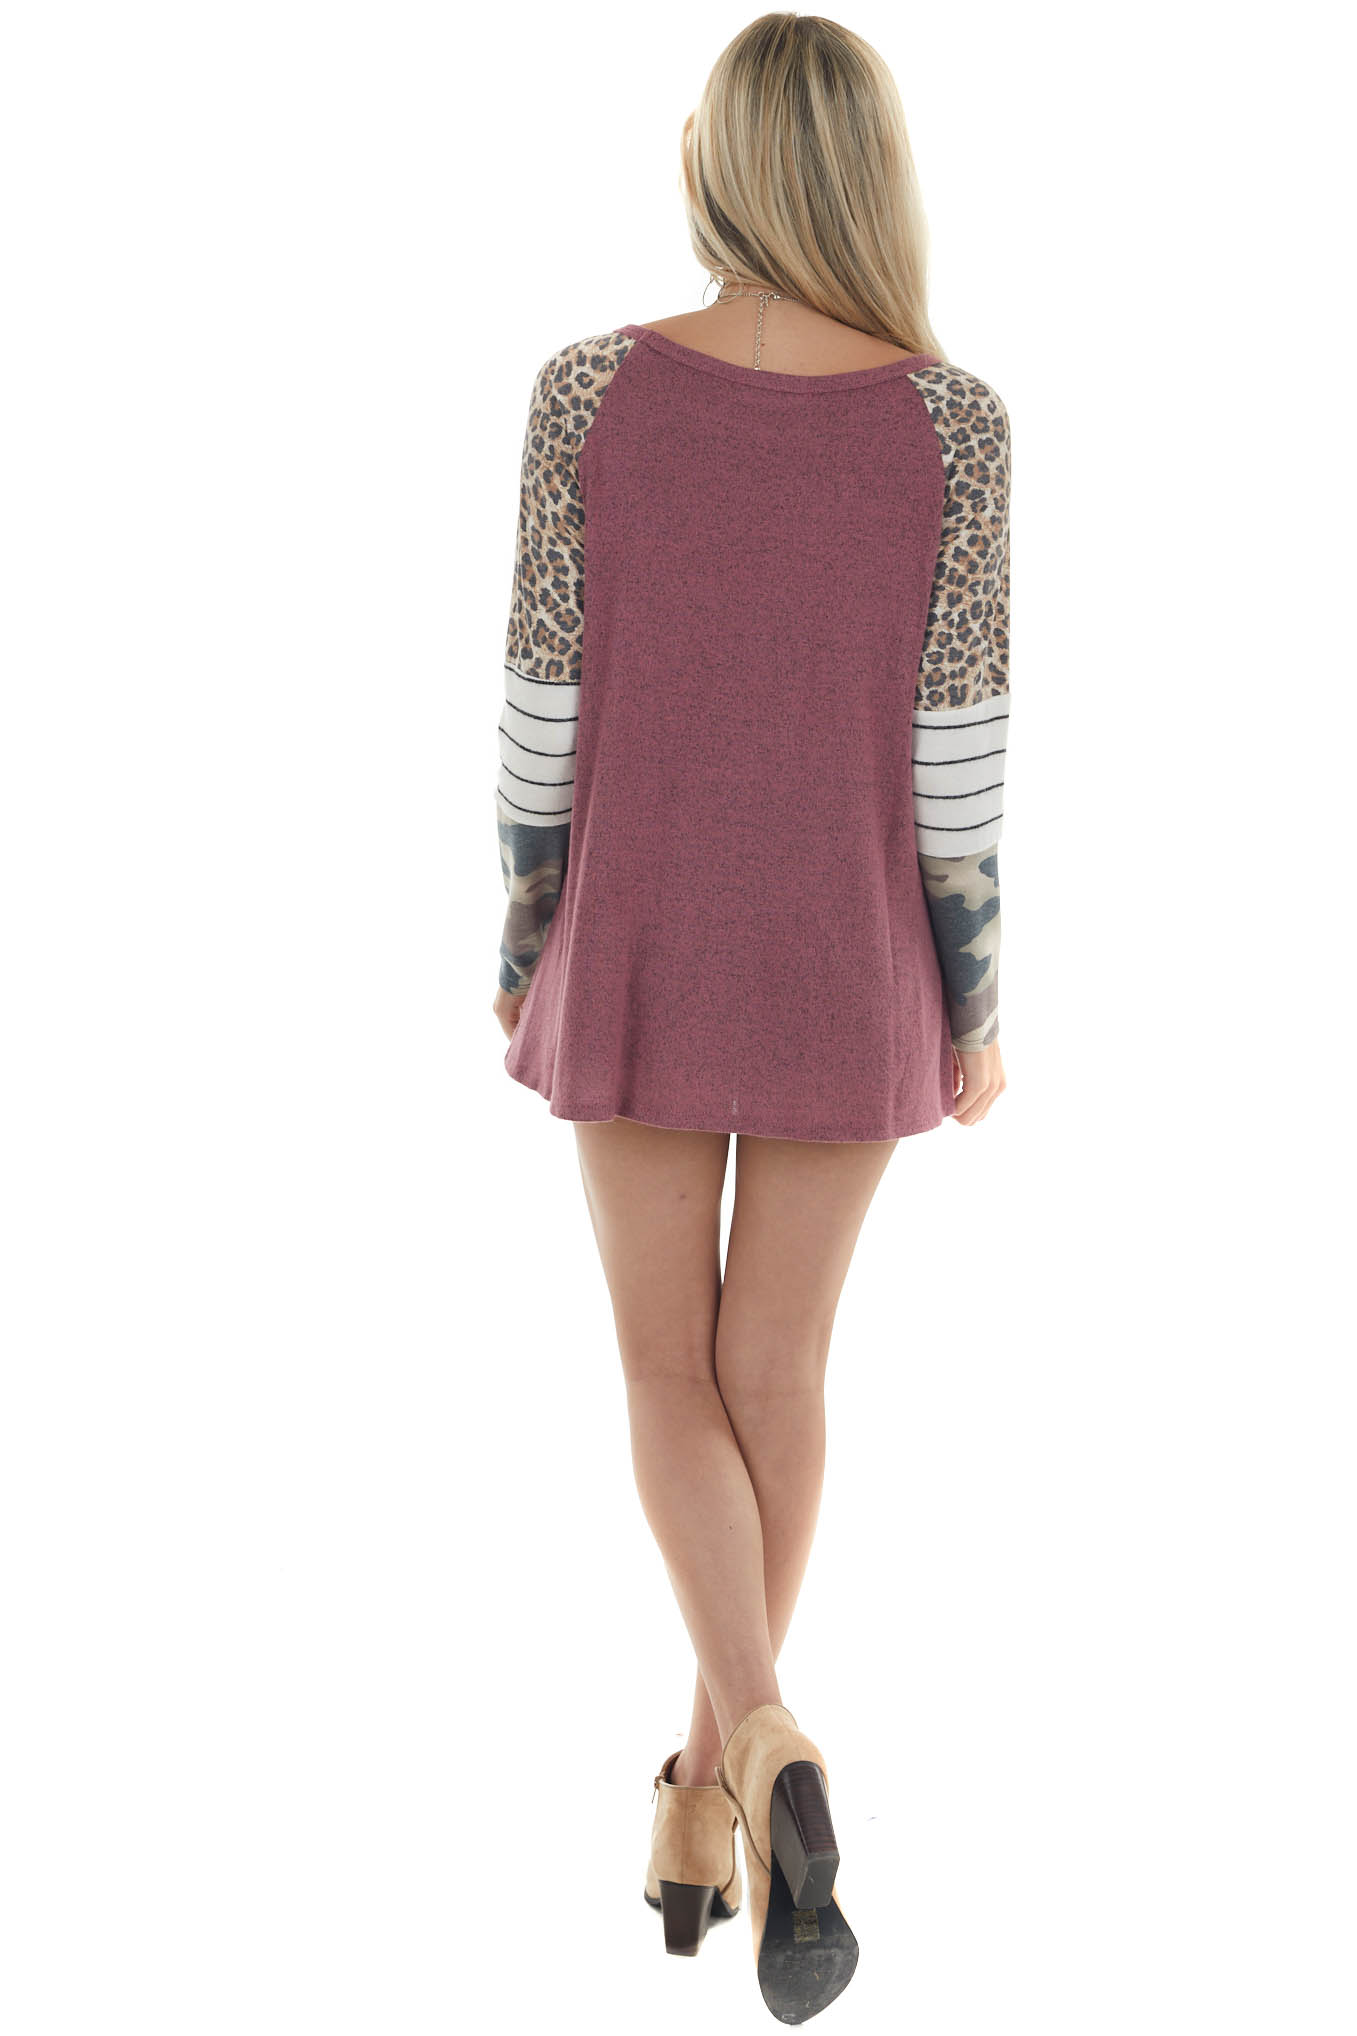 Berry Soft Knit Top with Colorblock Sleeves